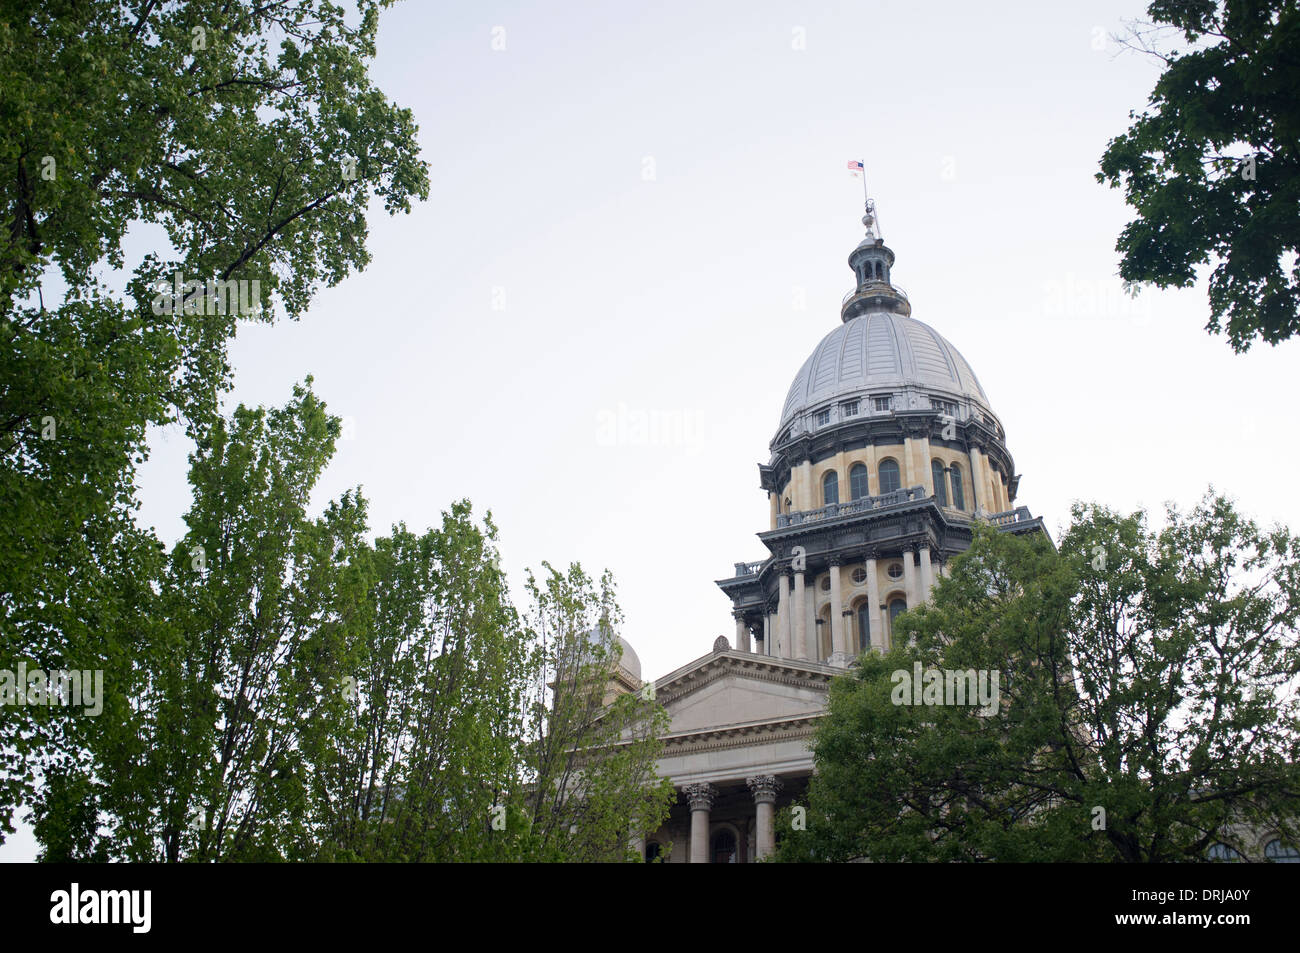 The Illinois State Capitol building in Springfield, Illinois on Apr. 23, 2012. - Stock Image